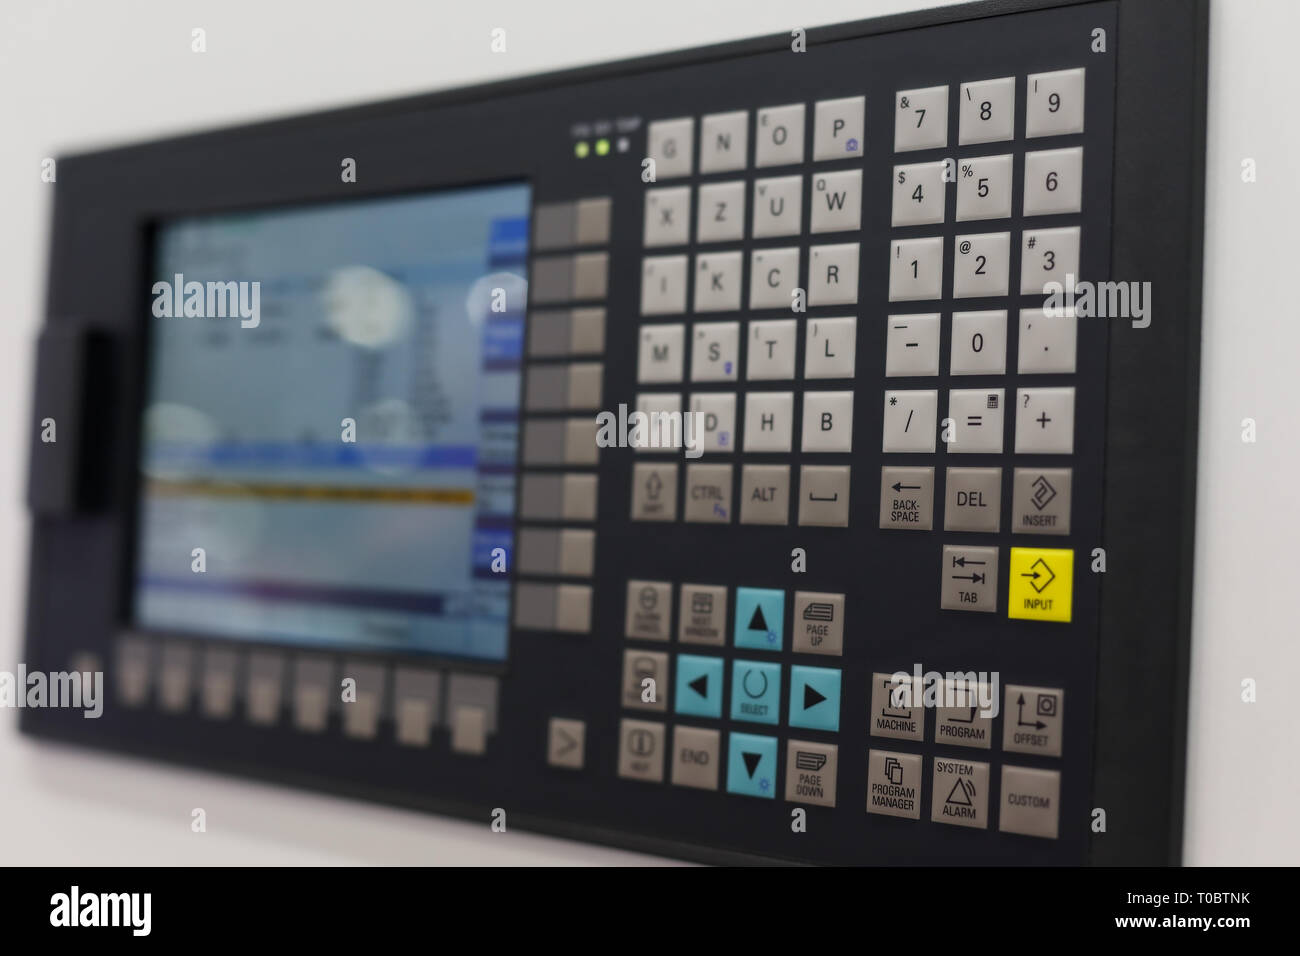 Control panel and screen of CNC-operated machine. Selective focus. - Stock Image